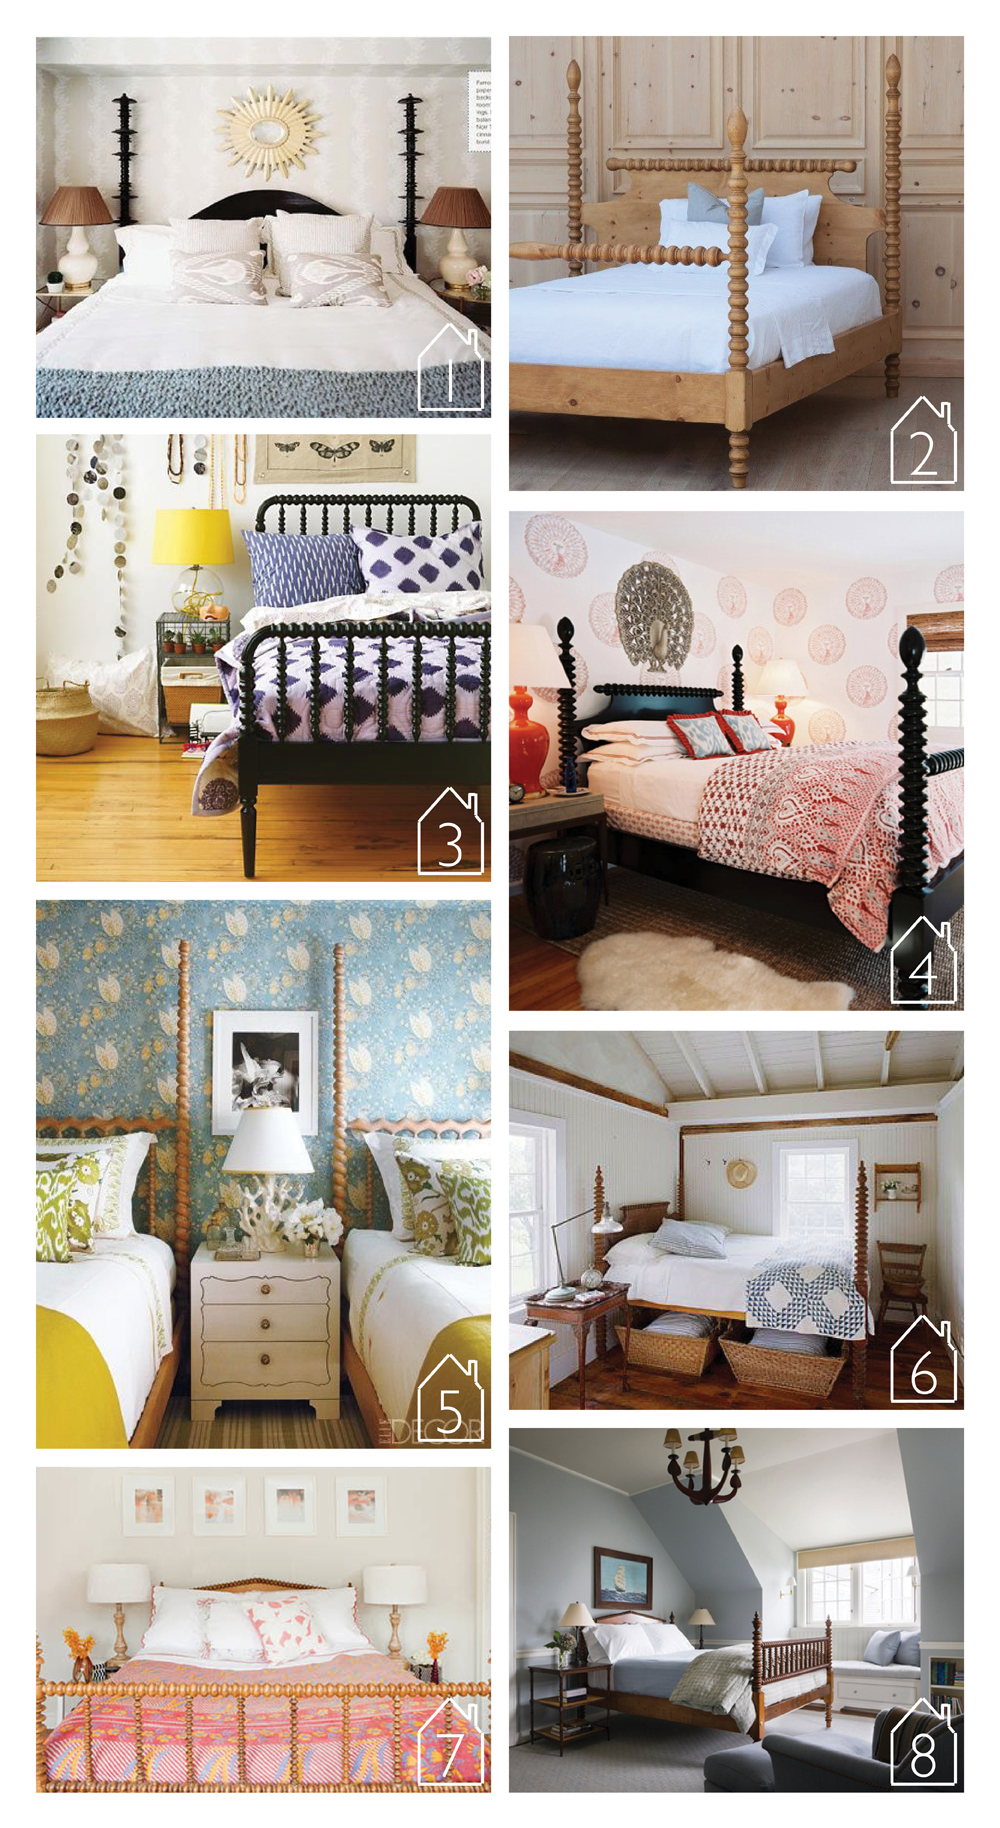 1. Noir Trading Ferret Bed via Lonny   2. Gwendoline Spindle Bed by Bradshaw Kirchofer Handmade Furniture  3. Jenny Lind Bed by Land of Nod  4. Room by Tilton Fenwick  5. Via Elle Decor  6. Via Better Homes and Gardens  7. Beach Cottage by Sarah Scales  8. House on Martha's Vineyard by Ferguson & Shamamian